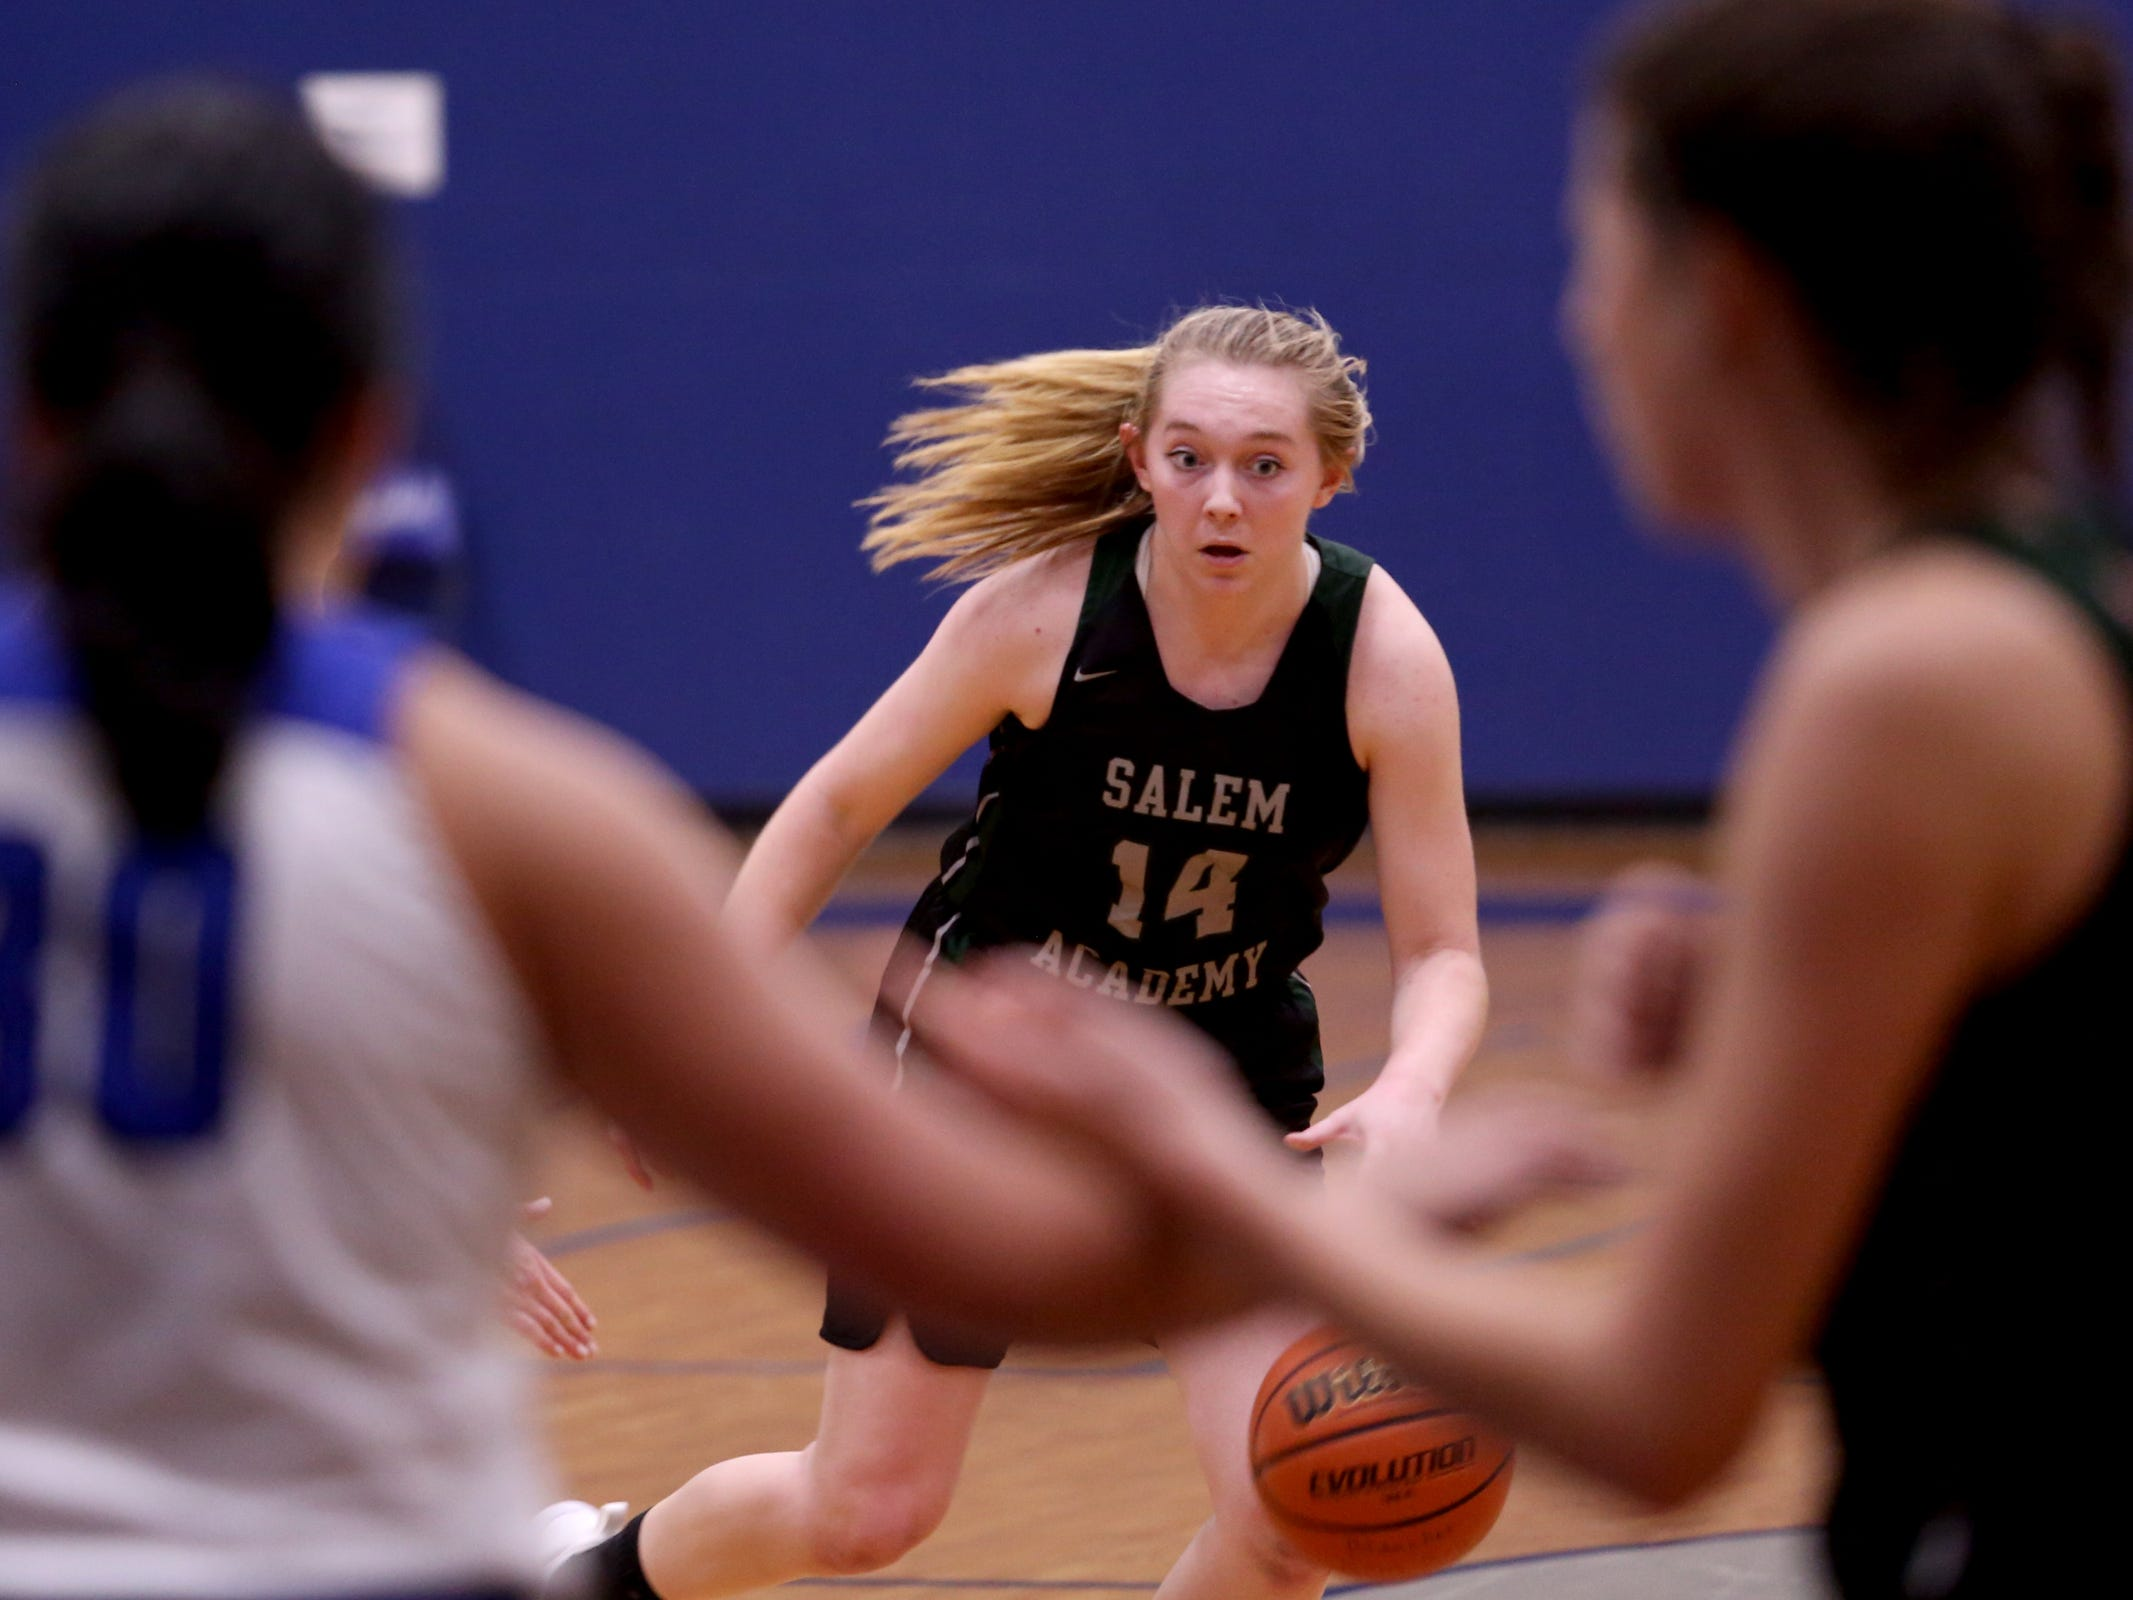 Salem Academy's Grace Brown (14) moves with the ball in the first half of the Salem Academy vs. Blanchet Catholic girls basketball game at Blanchet Catholic School in Salem on Friday, Jan. 18, 2019. Blanchet Catholic won the gam 48-40.